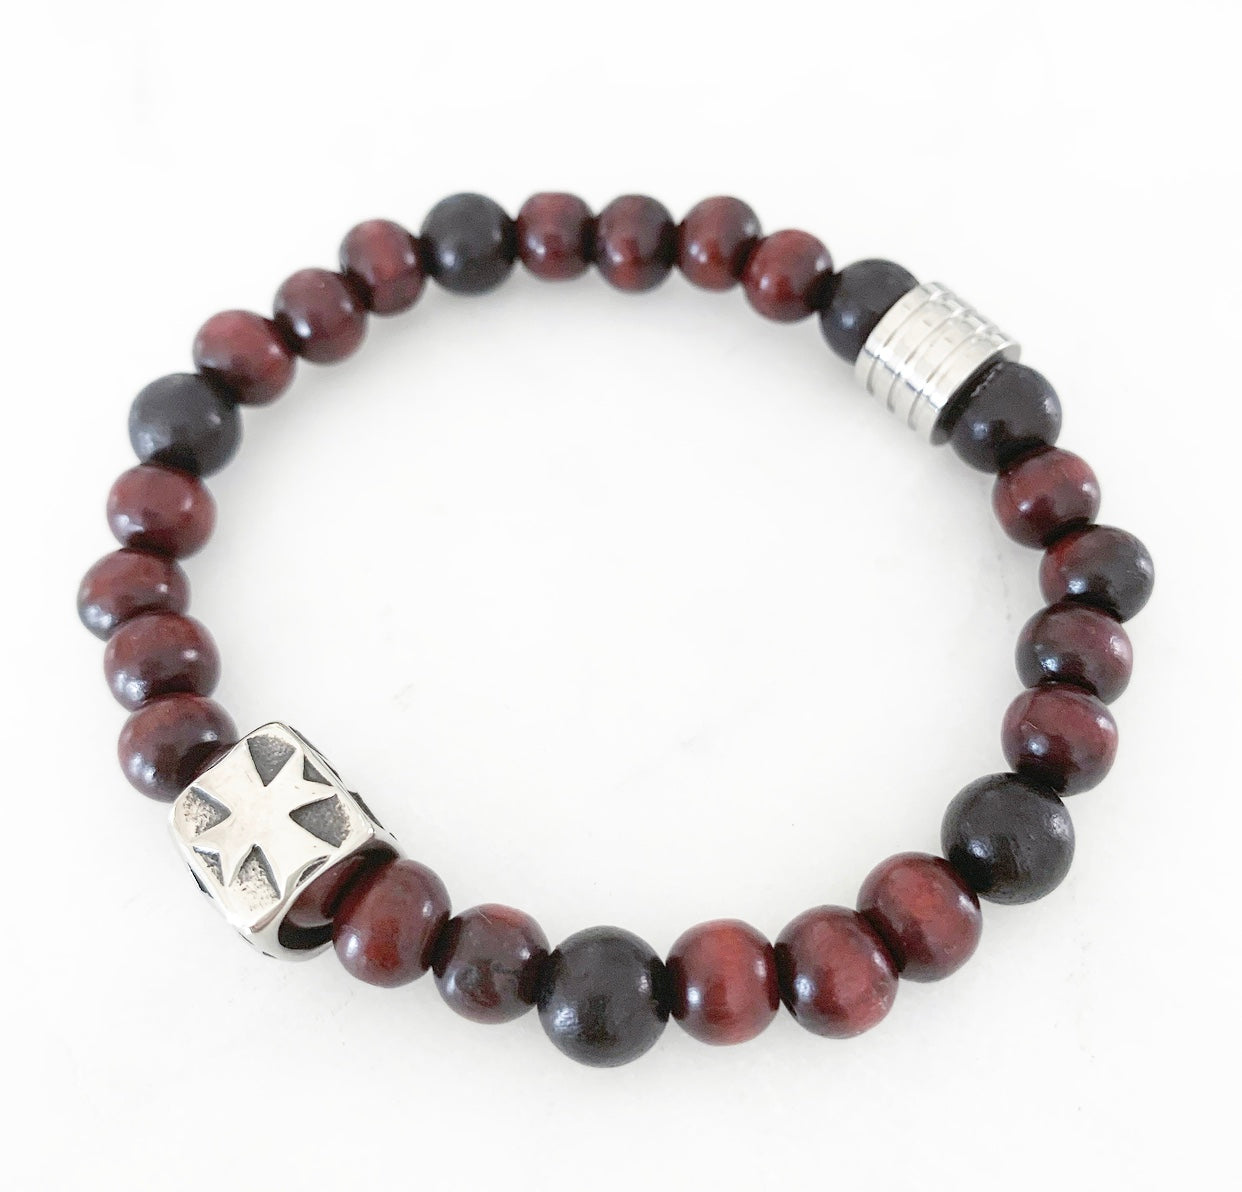 heather matjasic ohm jewelry shop mens bracelet sandalwood steel mens jewelry florida